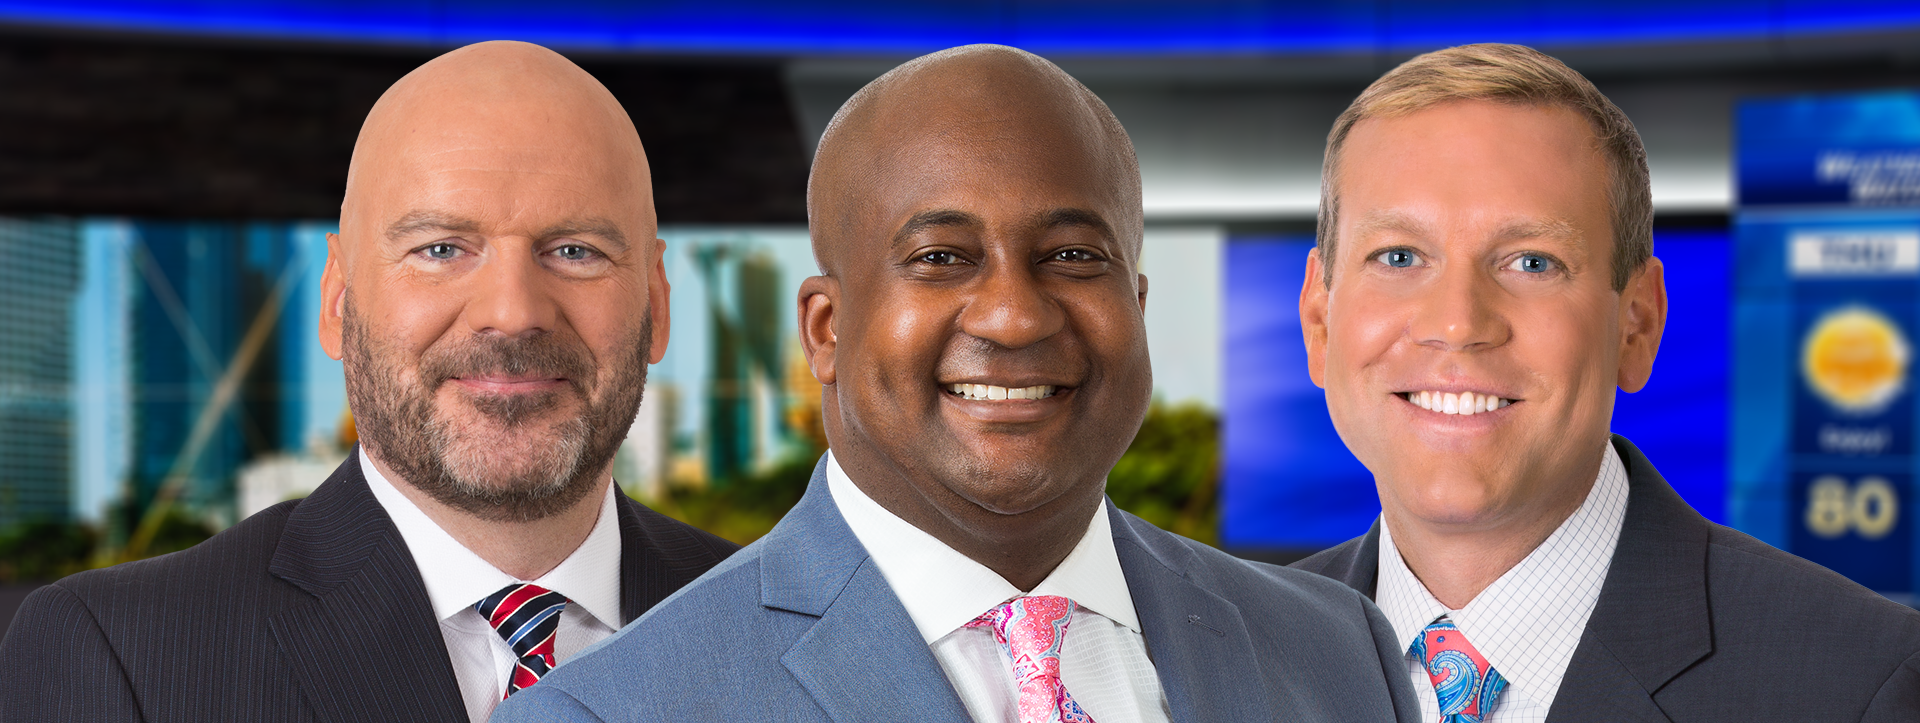 Derrick Rose (center, with Dan Needles and Mark Baden) will be at the anchor desk for WISN-TV's new 9 p.m. newscast, airing on Justice Milwaukee starting April 1.